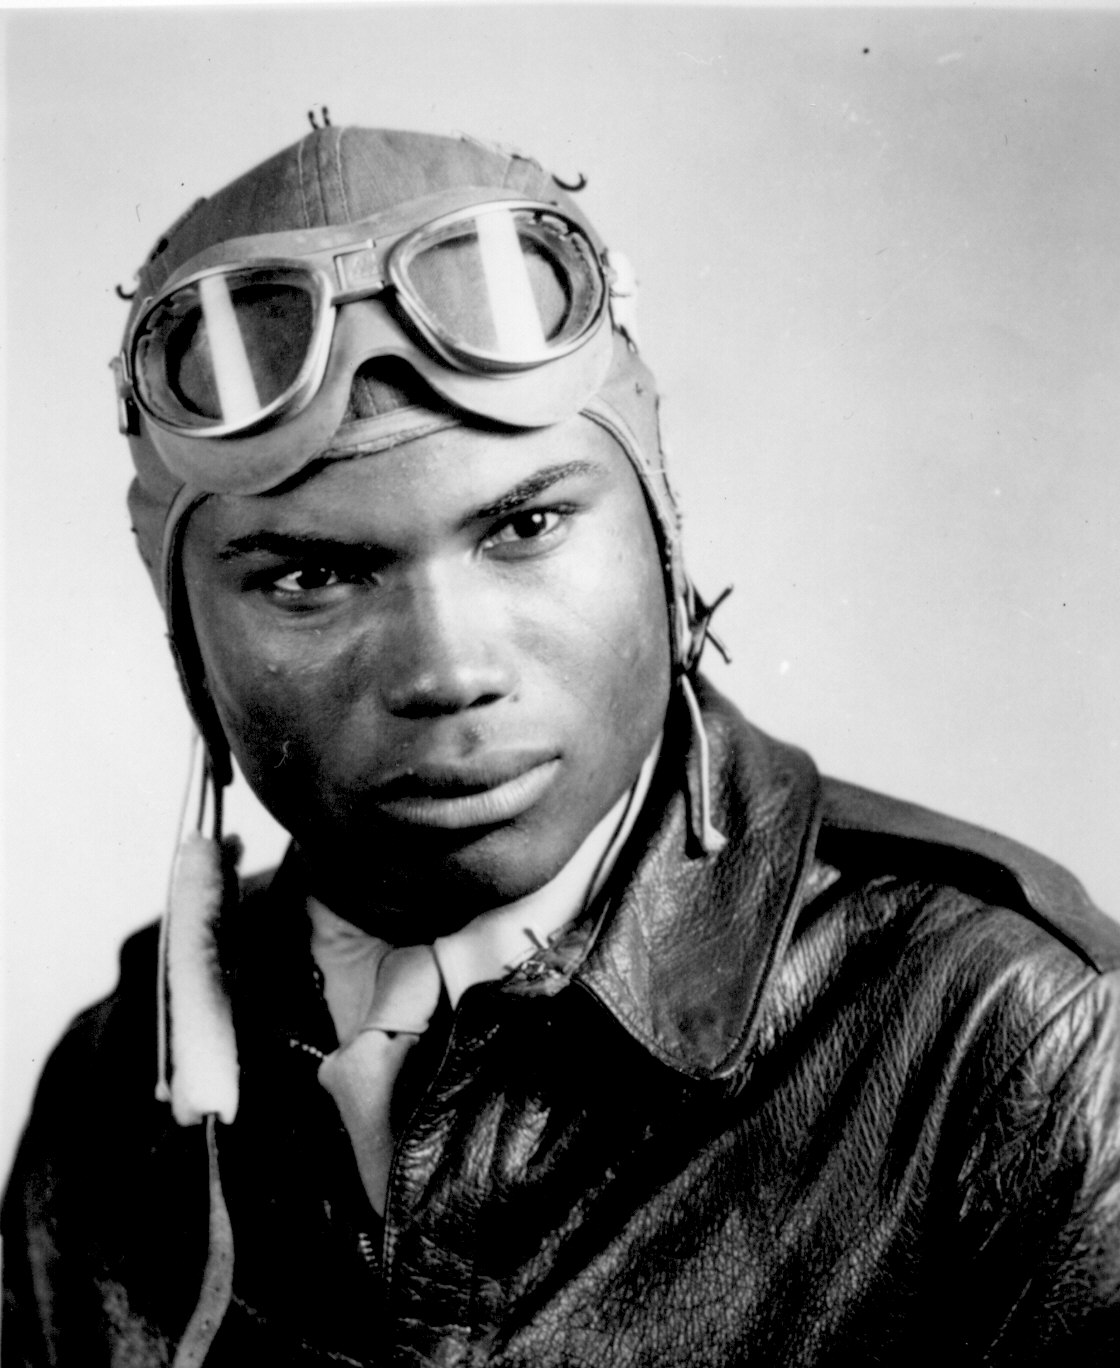 December 1944 from air corpsschool tuskegee al ca december